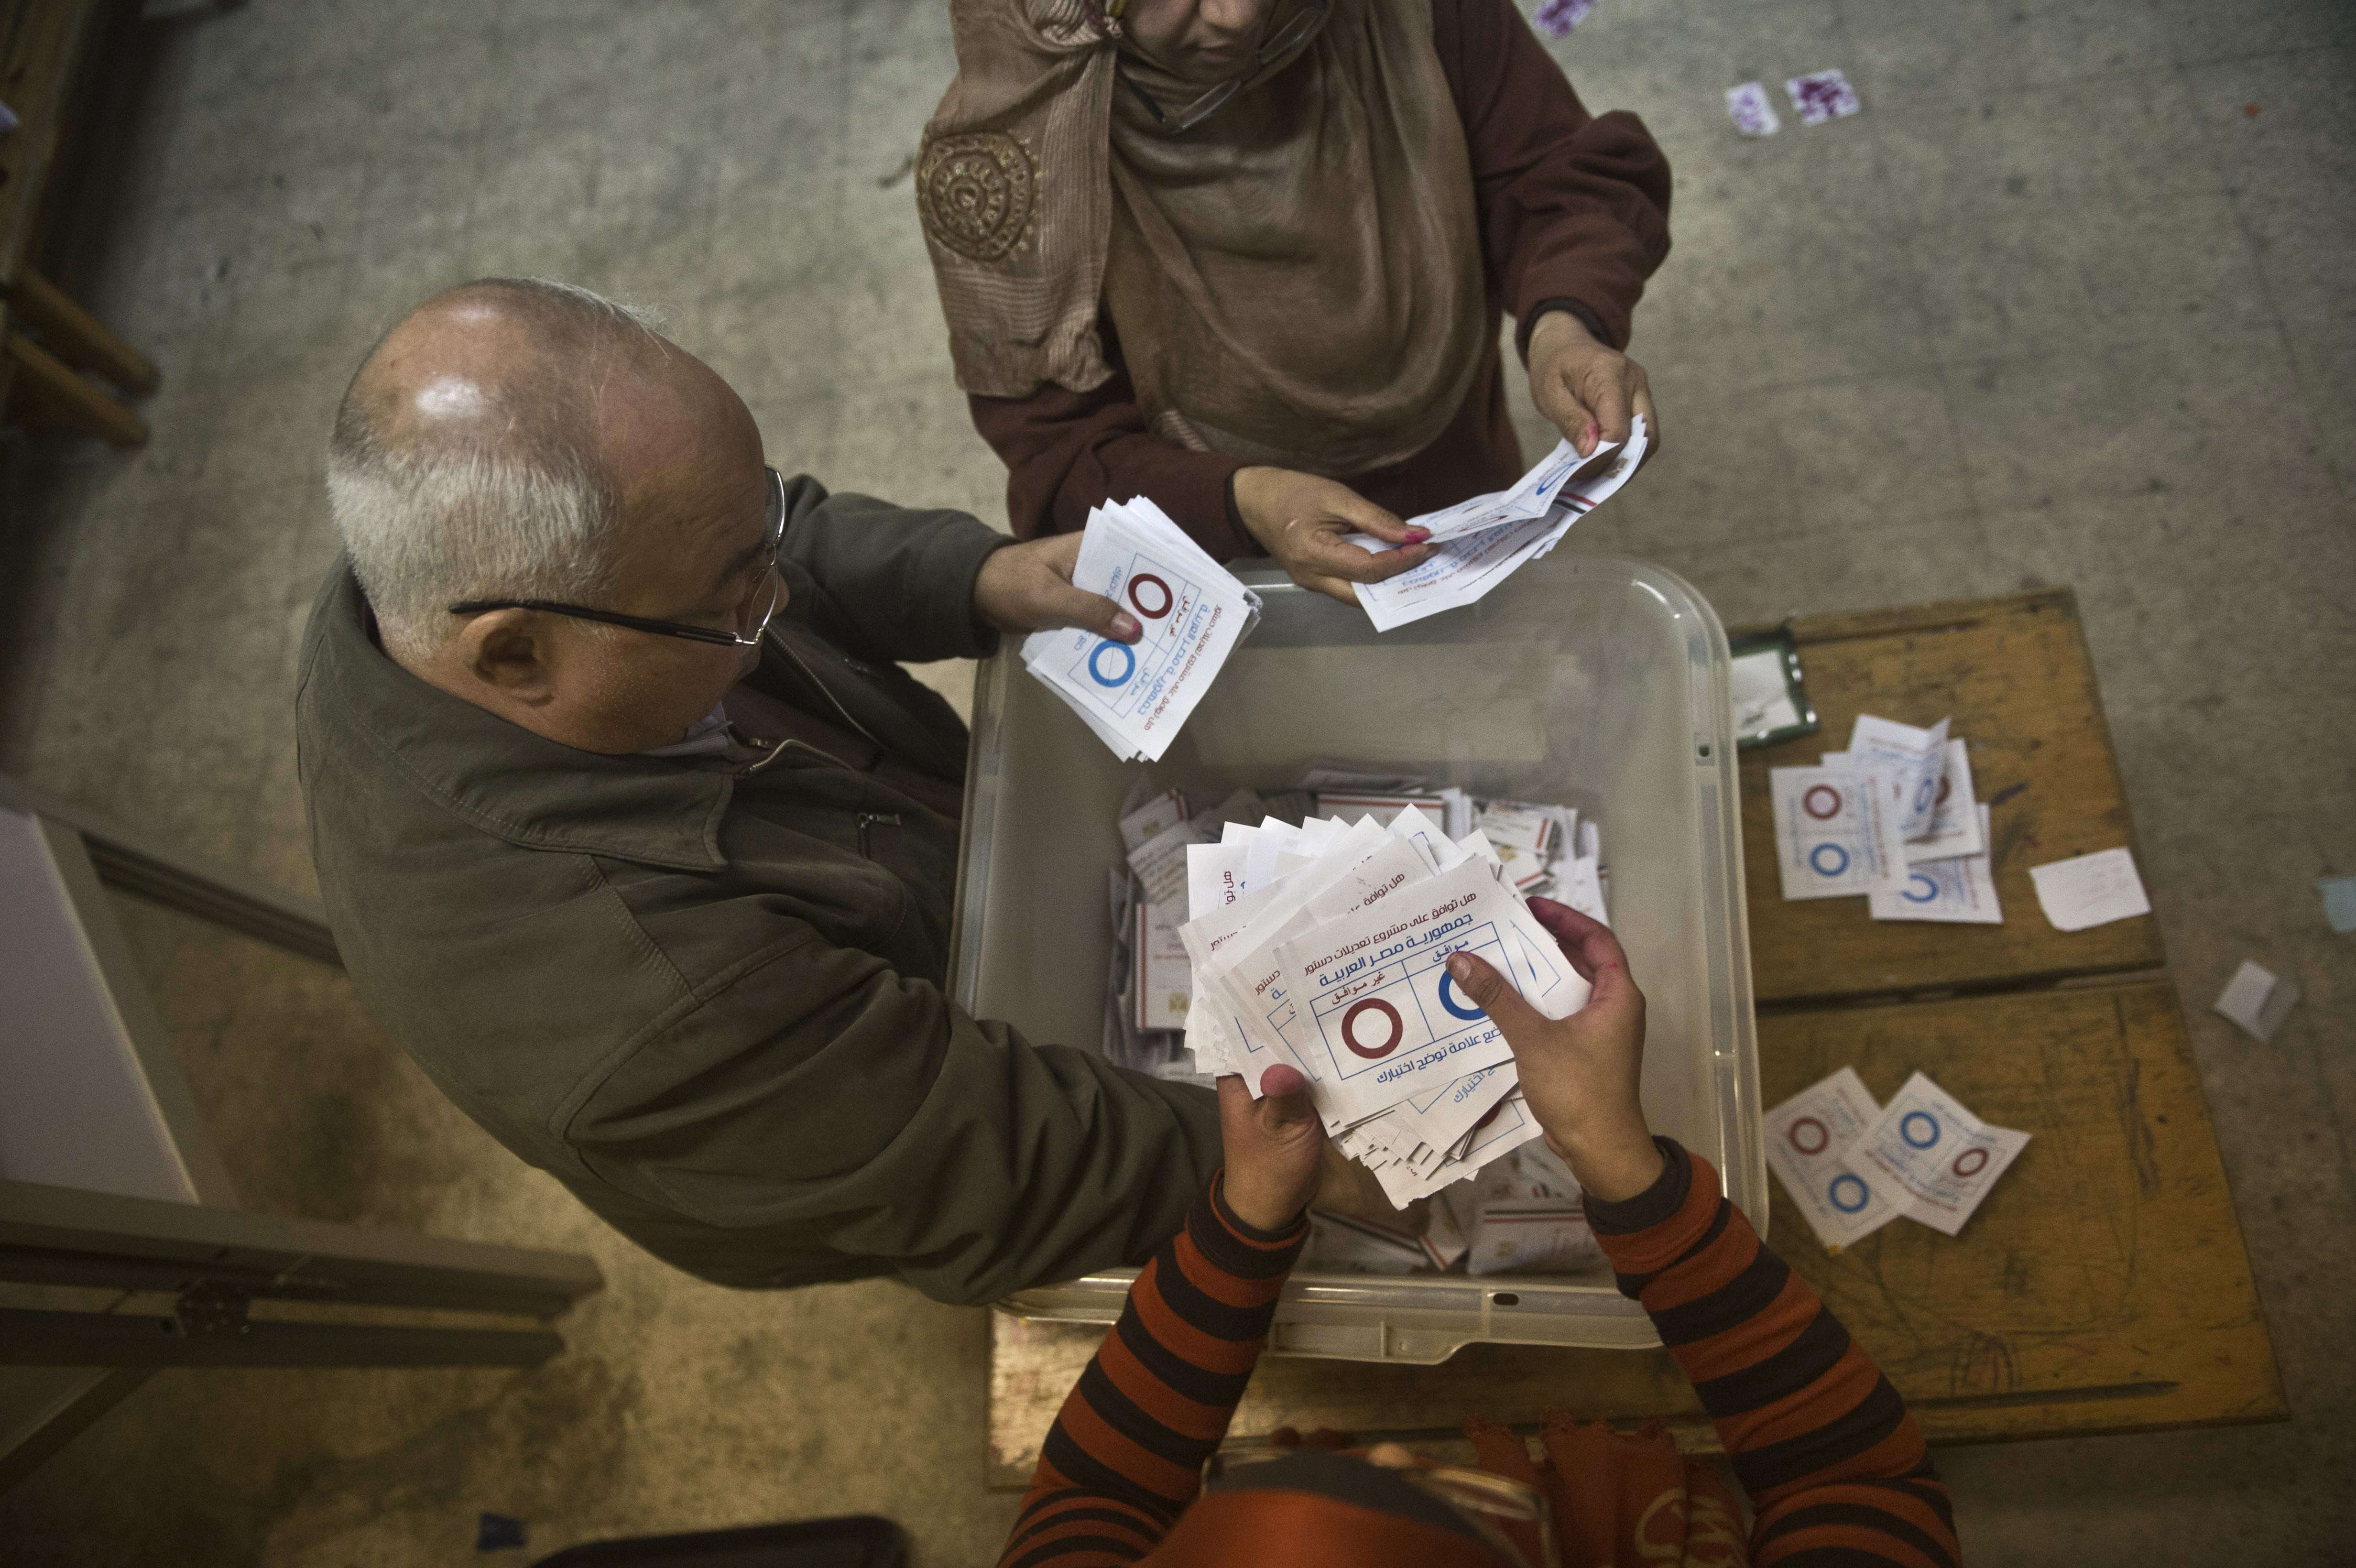 Polling station officials count ballots in Cairo on 15 January 2014 (AFP Photo)